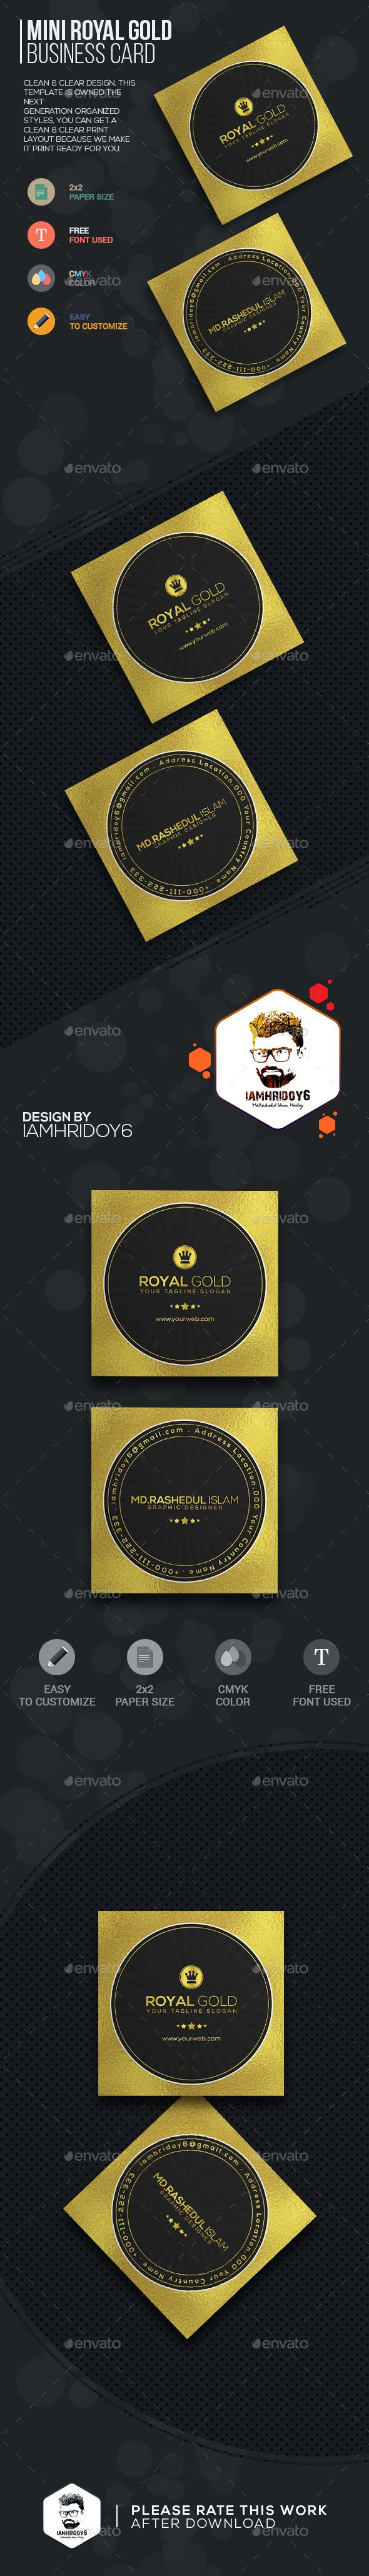 1011 best creative business cards images on pinterest